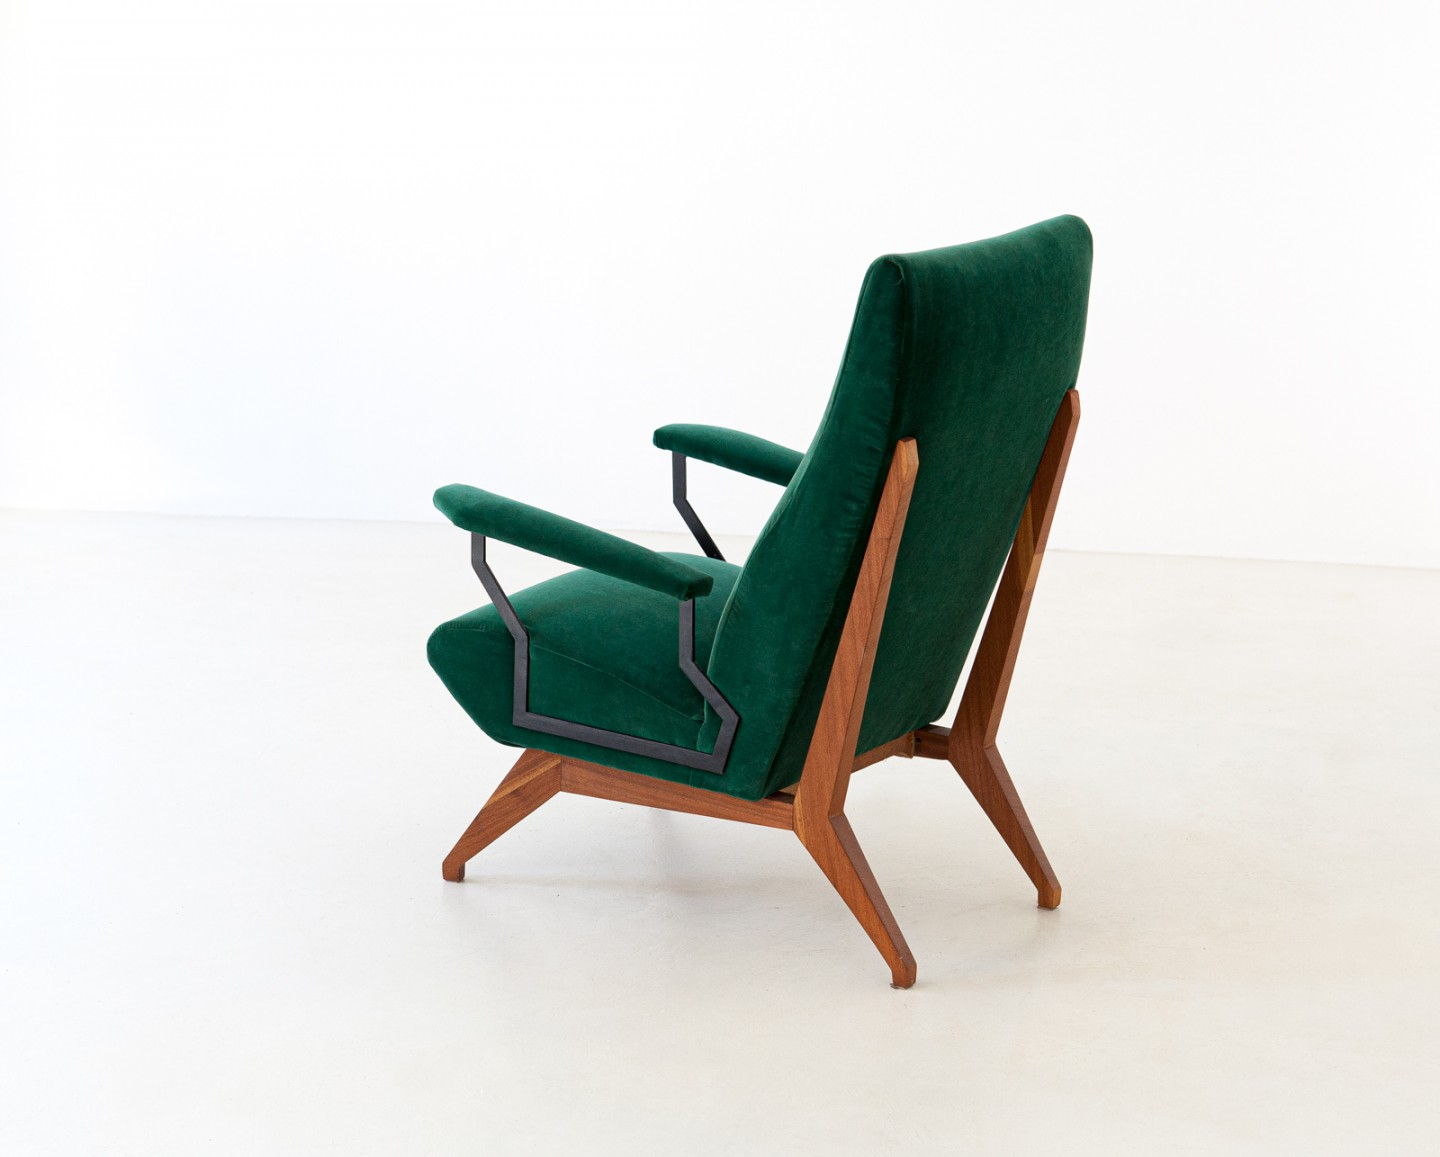 1950s Green Velvet and Mahogany Italian Armchair SE290 not available